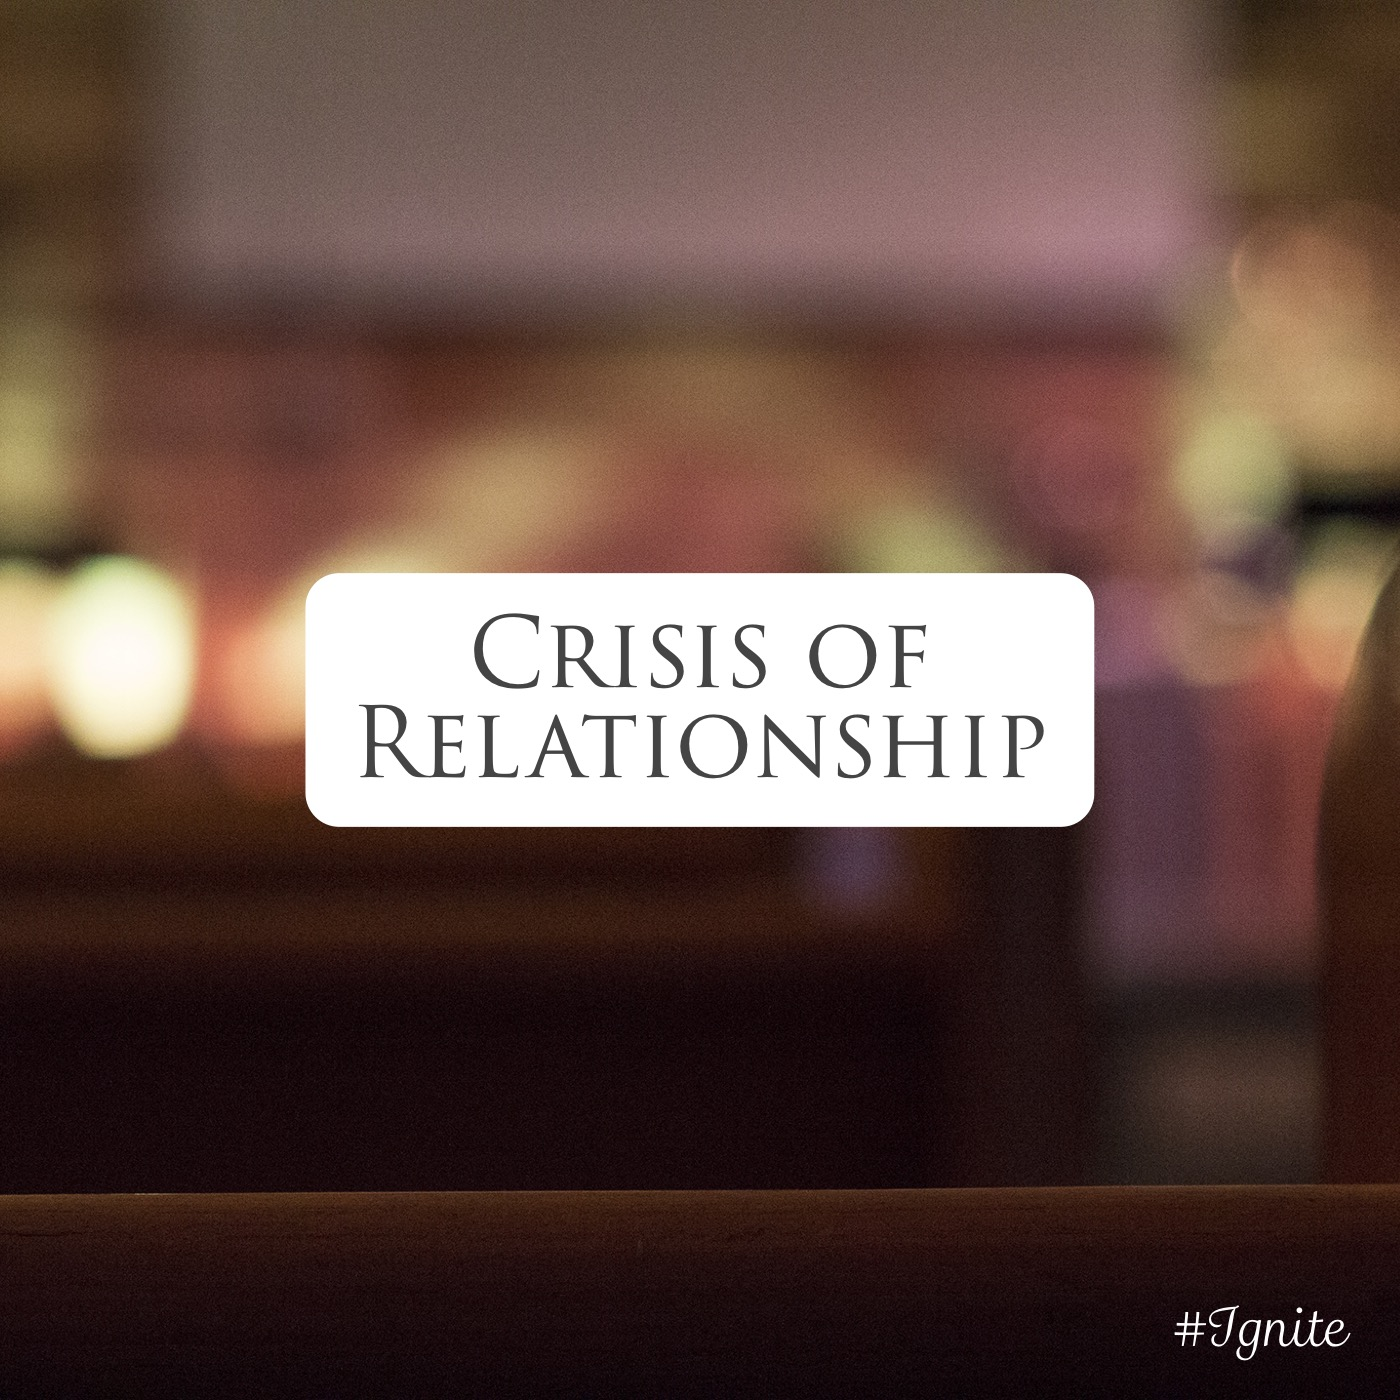 Ignite – A Crisis of Relationships